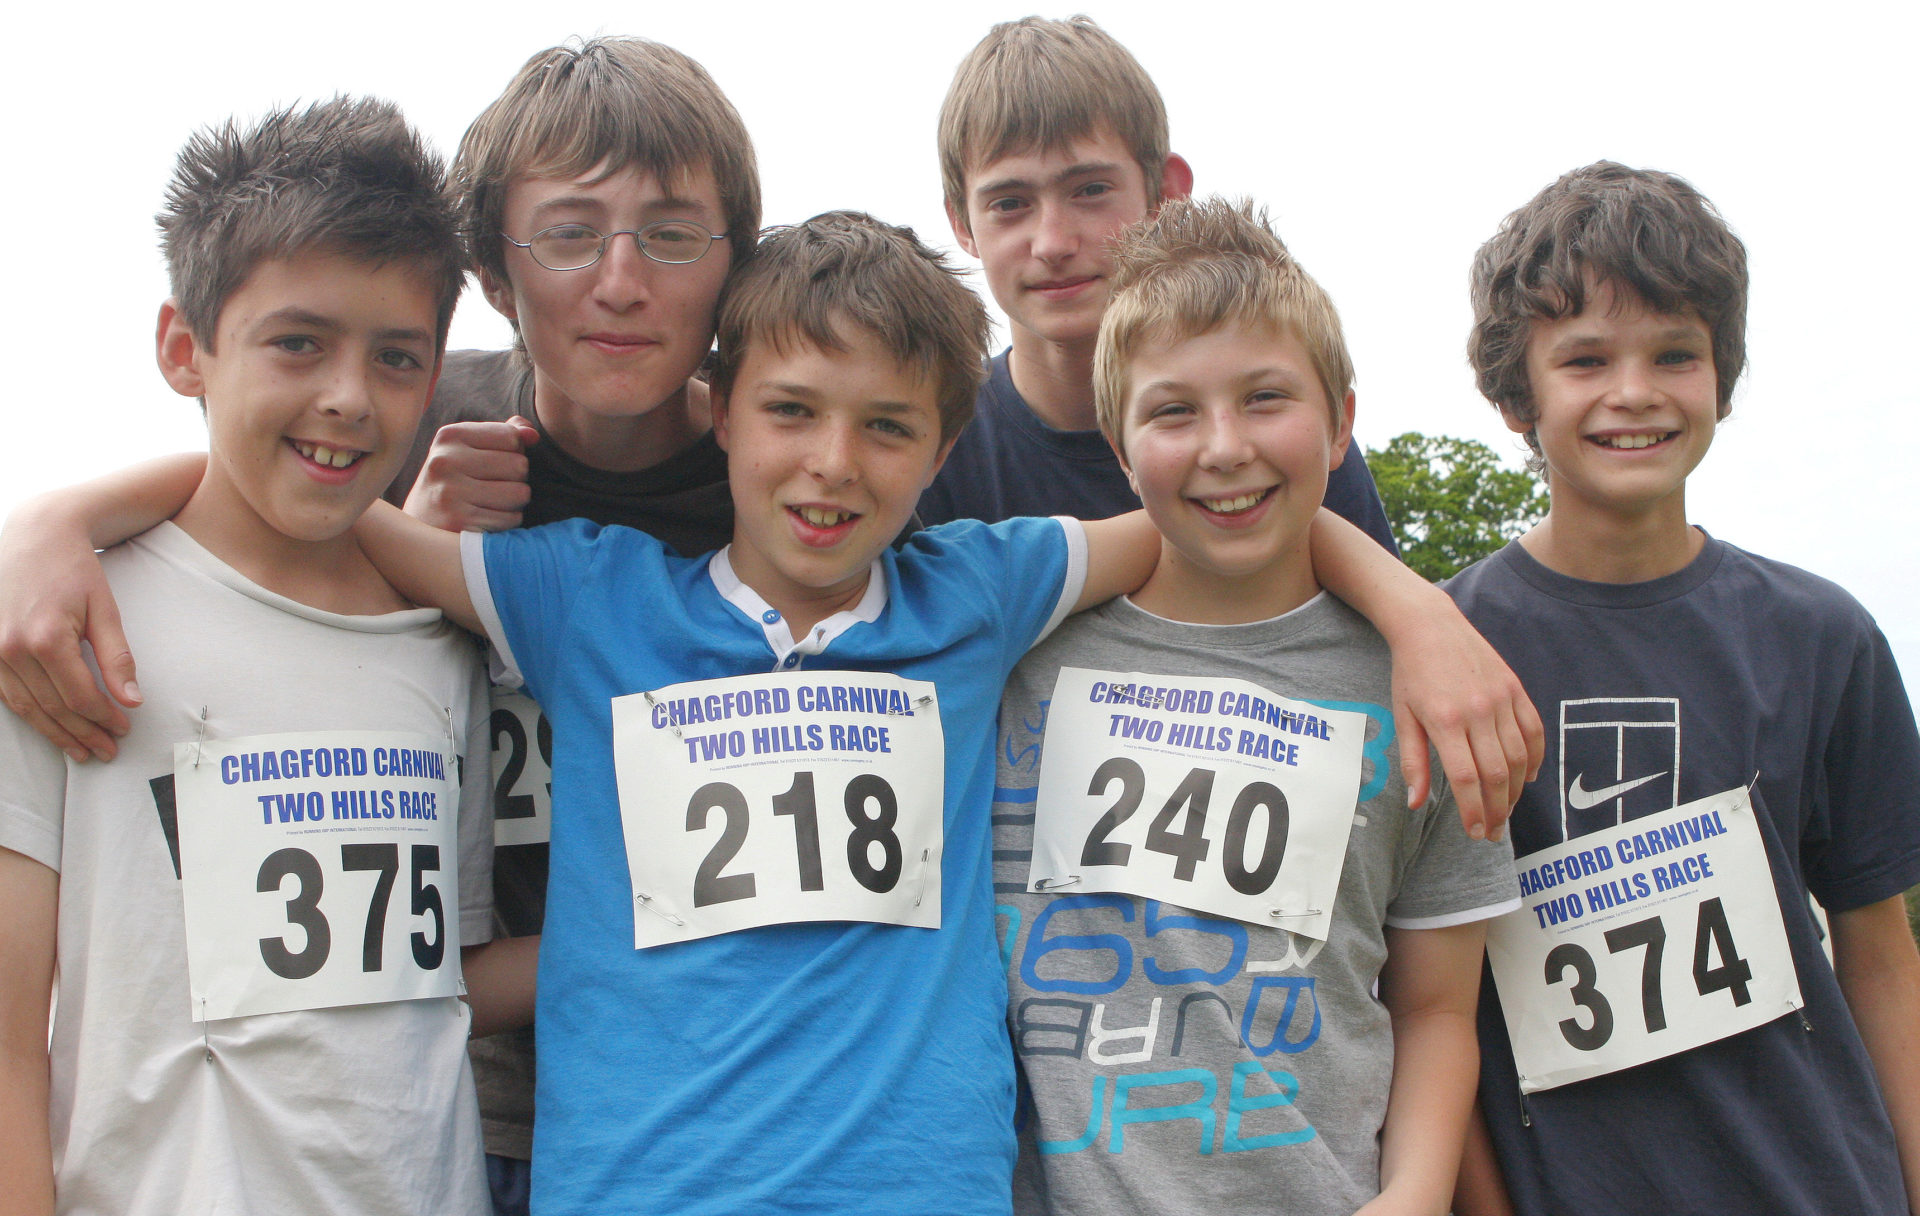 Great to see local boys entering the Two Hills charity Race.